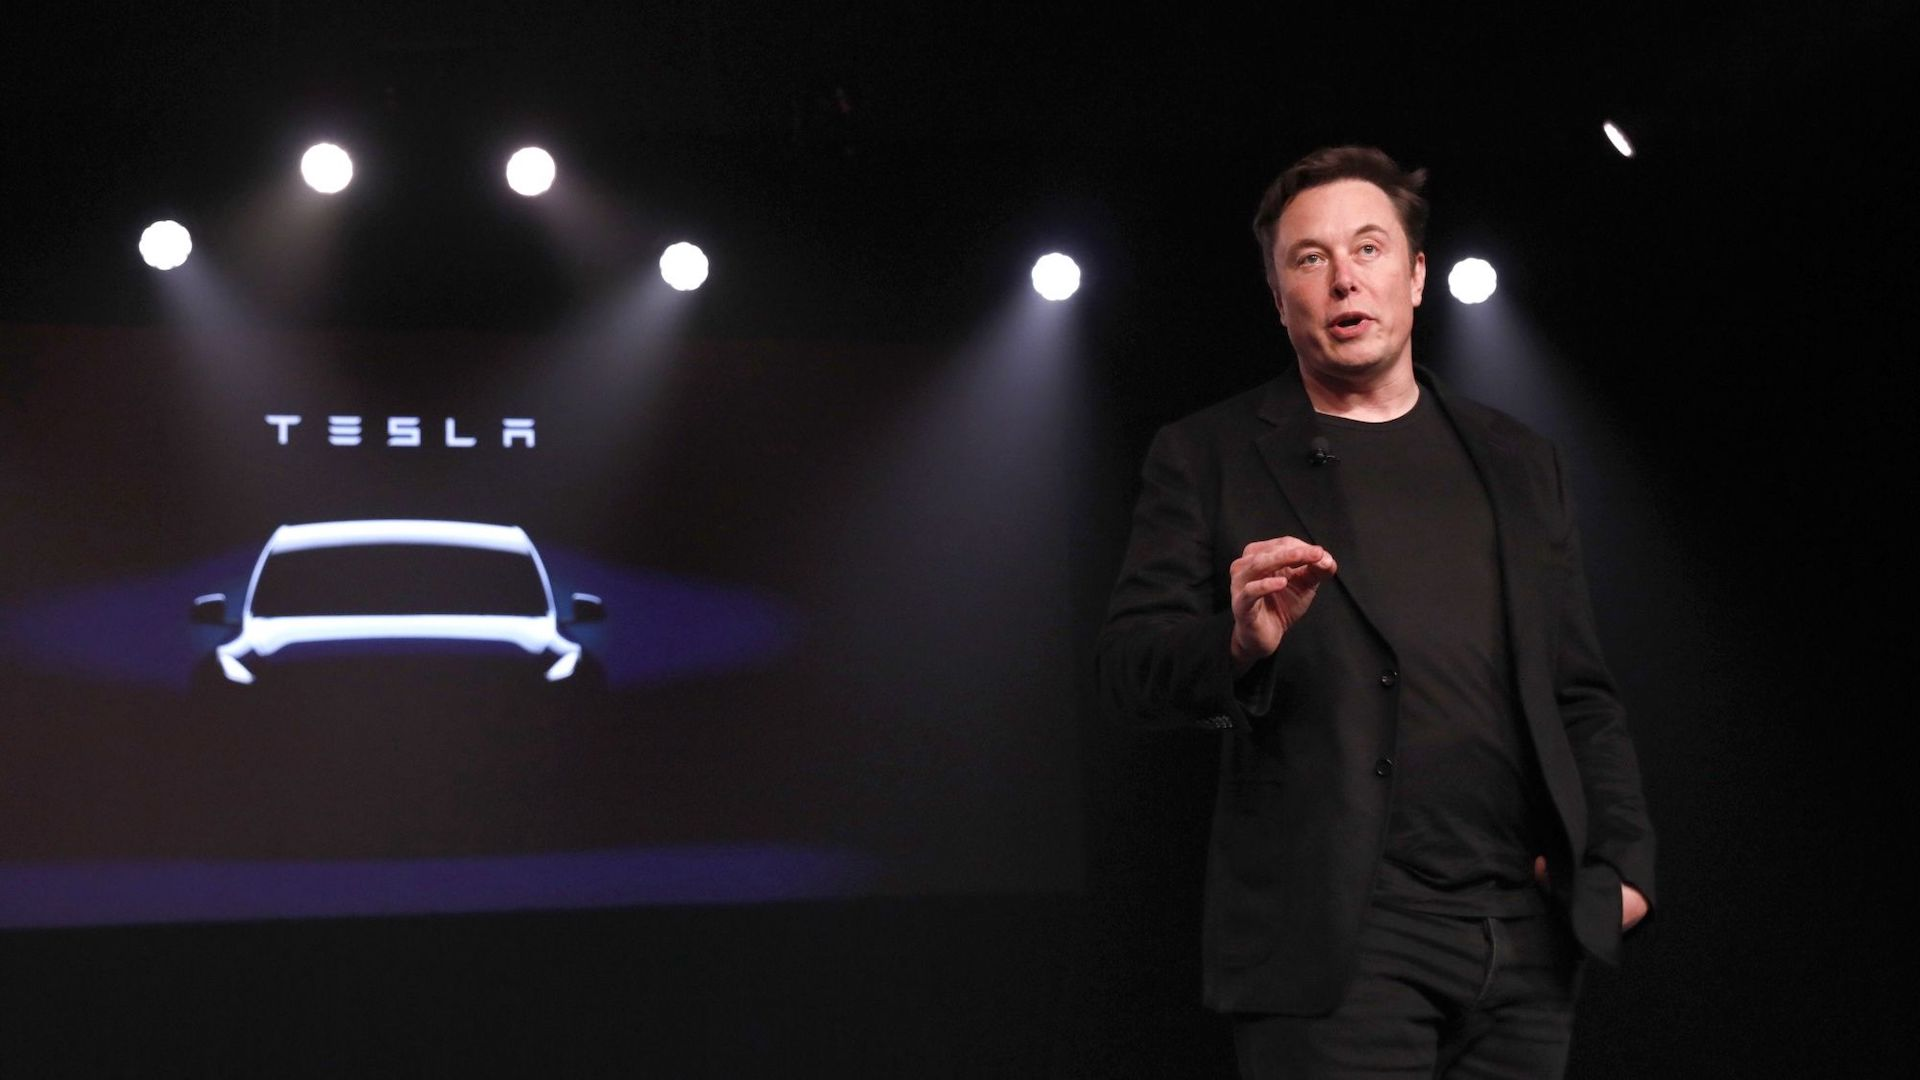 What Elon Musk think Twitter could be doing better